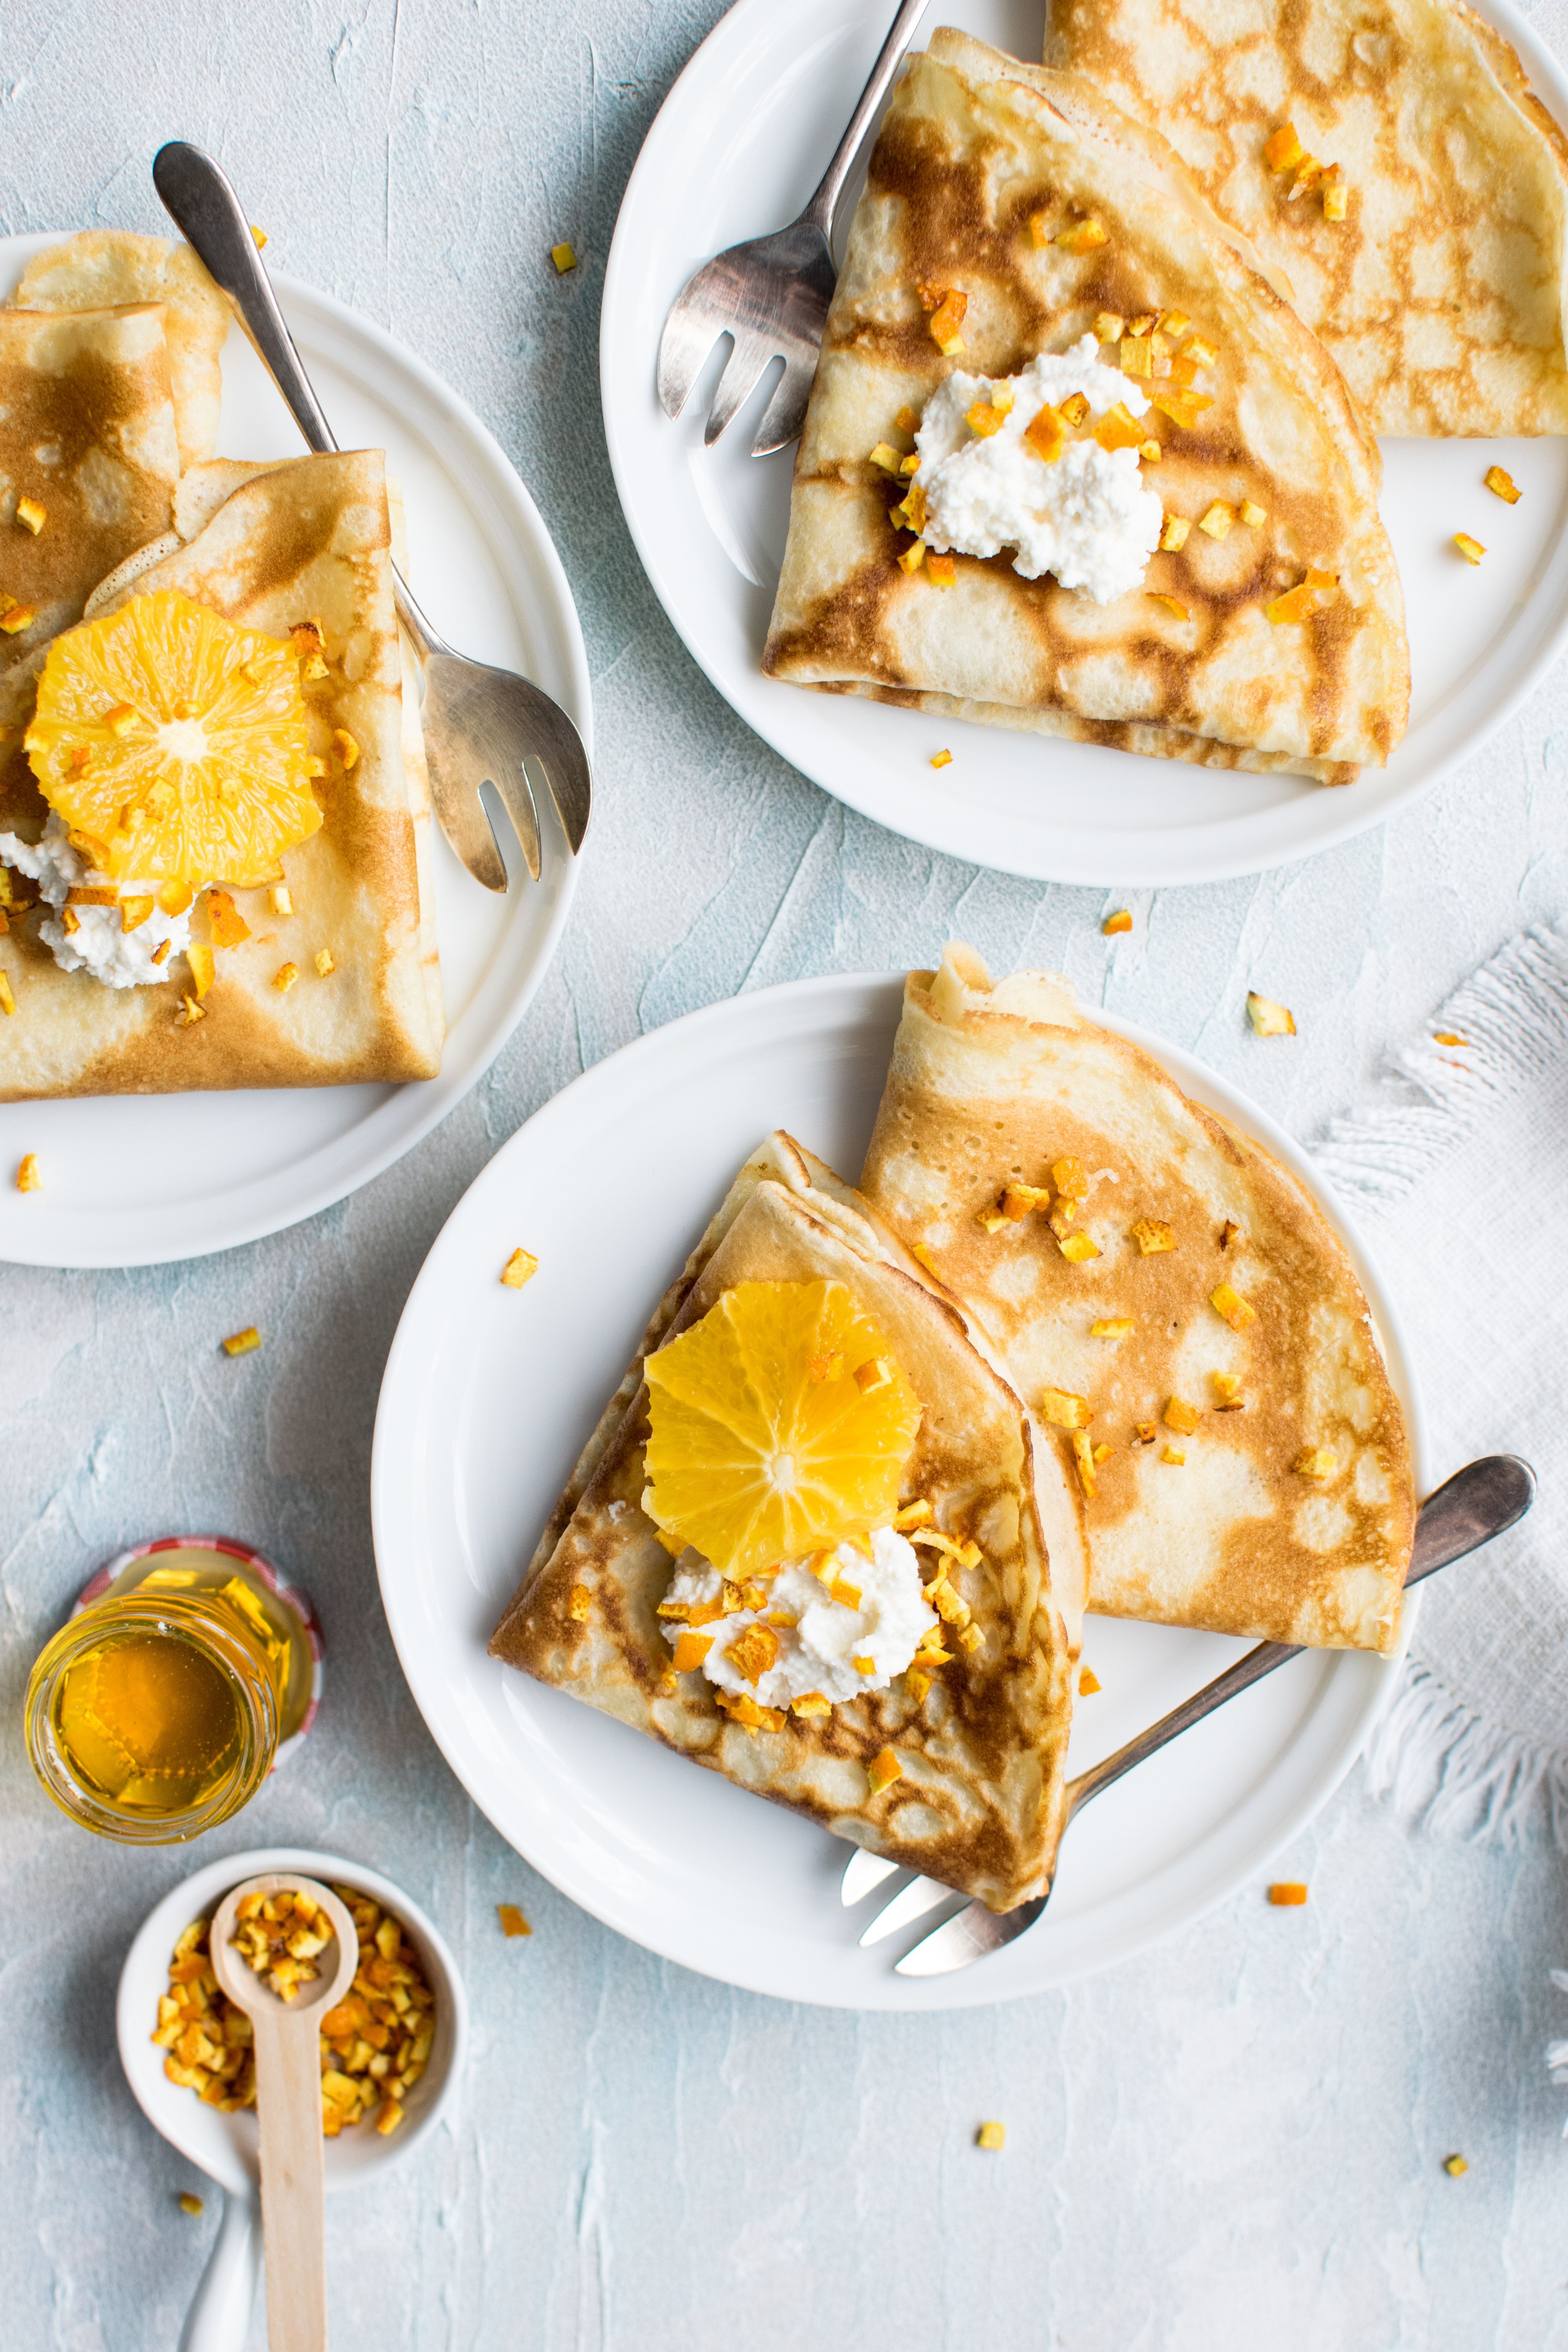 Sometimes The Simple Things Taste The Best This Easy Crepe Recipe Has Fresh Whole Food Flavors With Almond Oranges And Strawbe In 2020 Food Recipes Breakfast Recipes